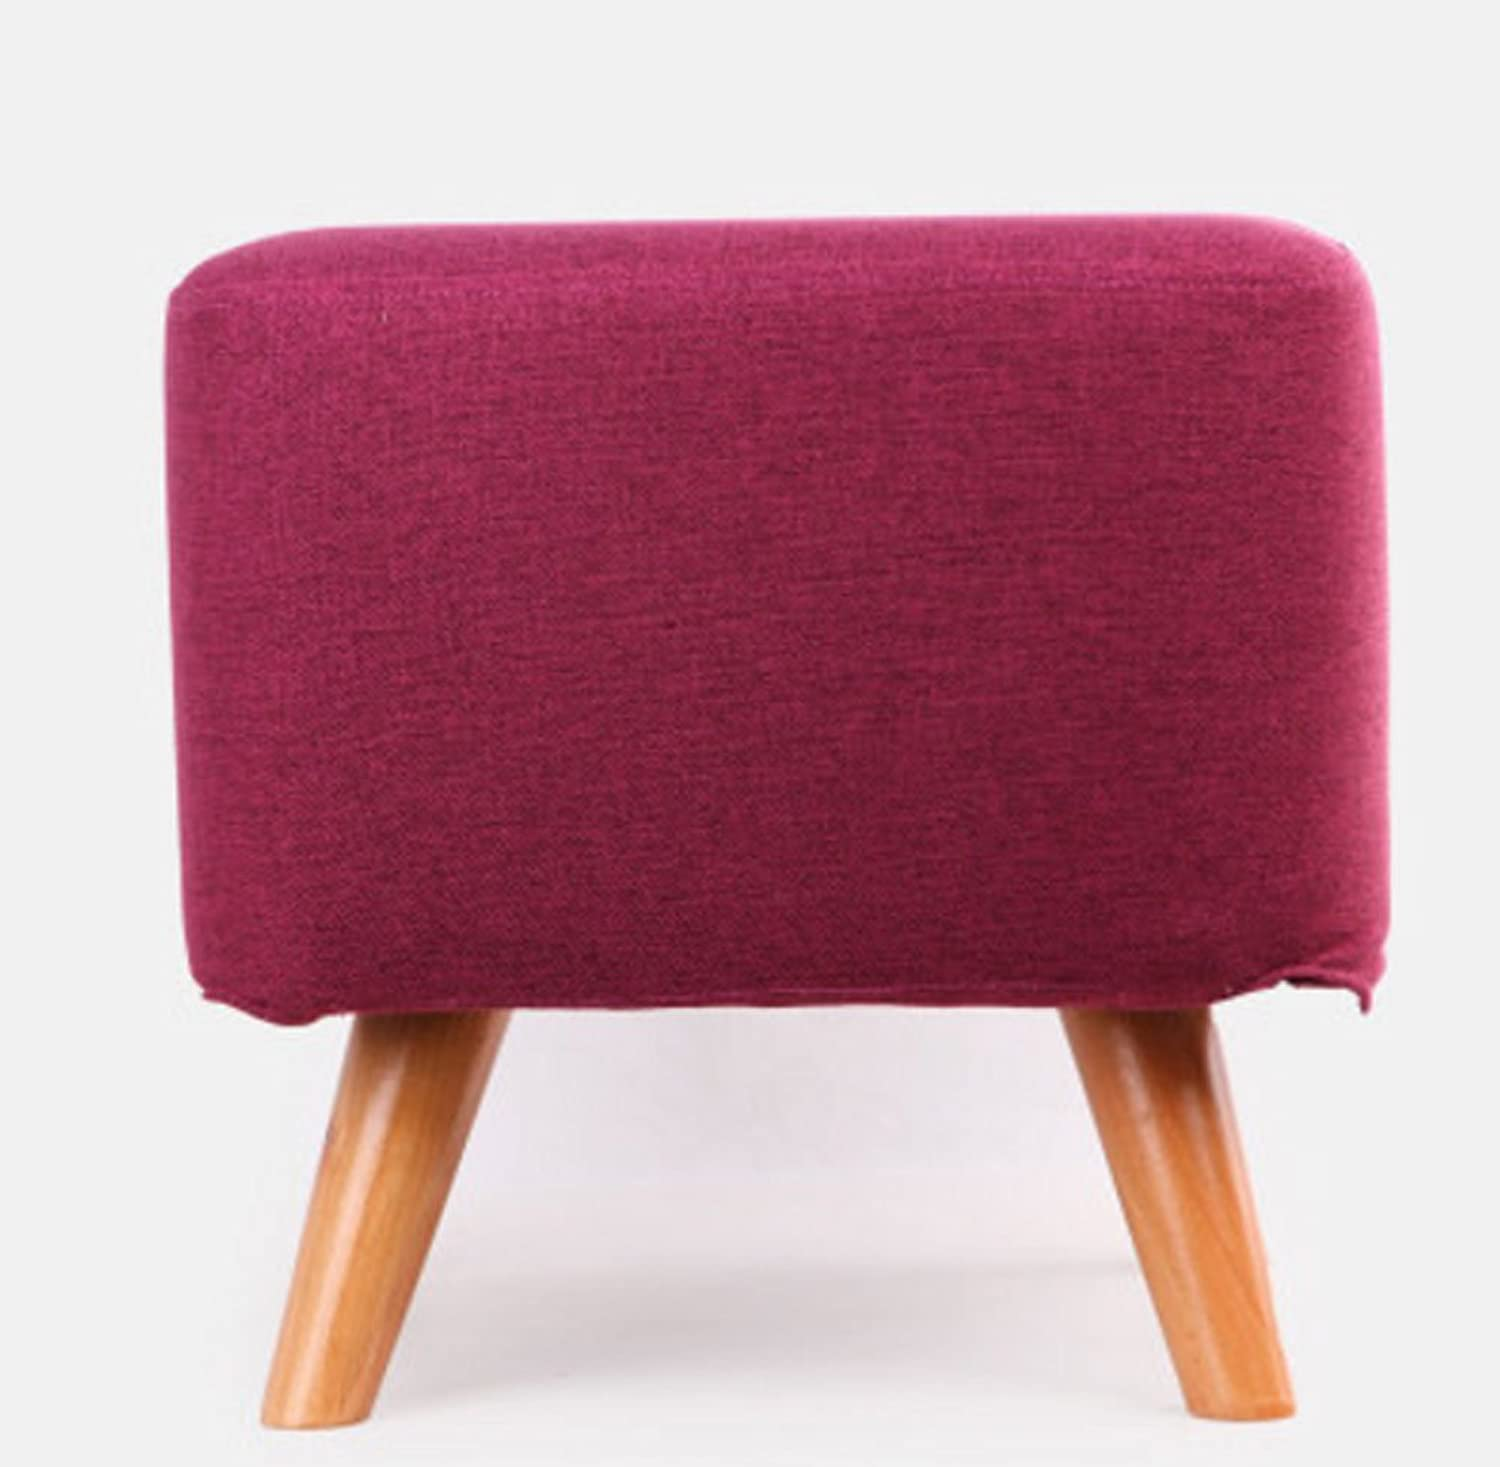 Sofa Stool, Household Side Stool Stool Fashion Sofa Stool Coffee Table Small Stool Bedroom Take a Stool Solid Wood shoes shoes Living Room Creative (color    4)